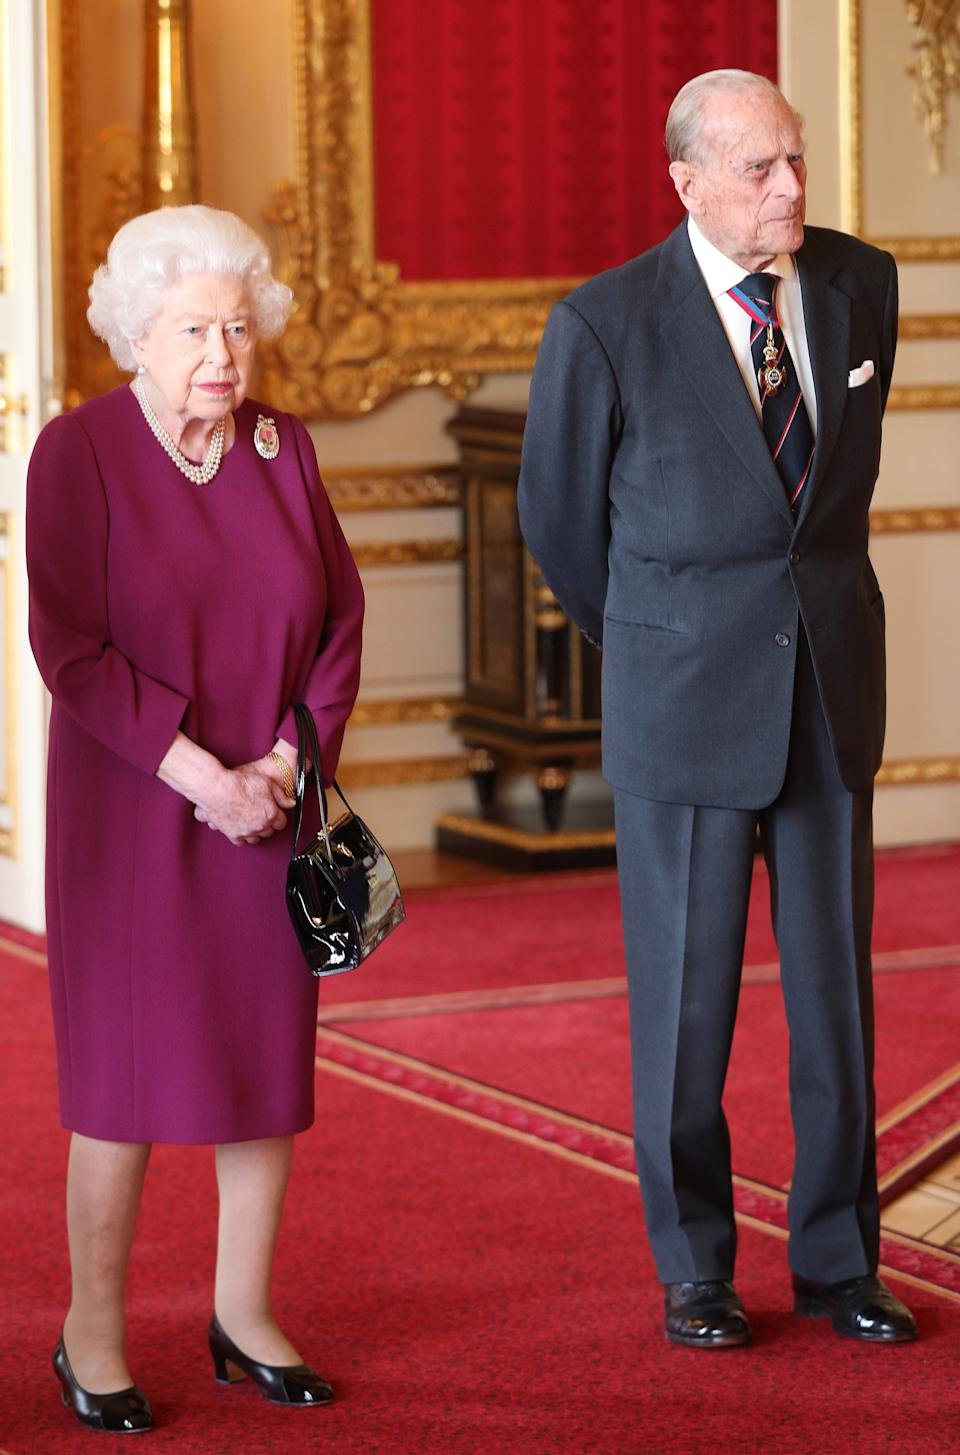 The Queen and the Duke of Edinburgh at the Members of the Order of Merit luncheon at Windsor Castle [Photo: PA]